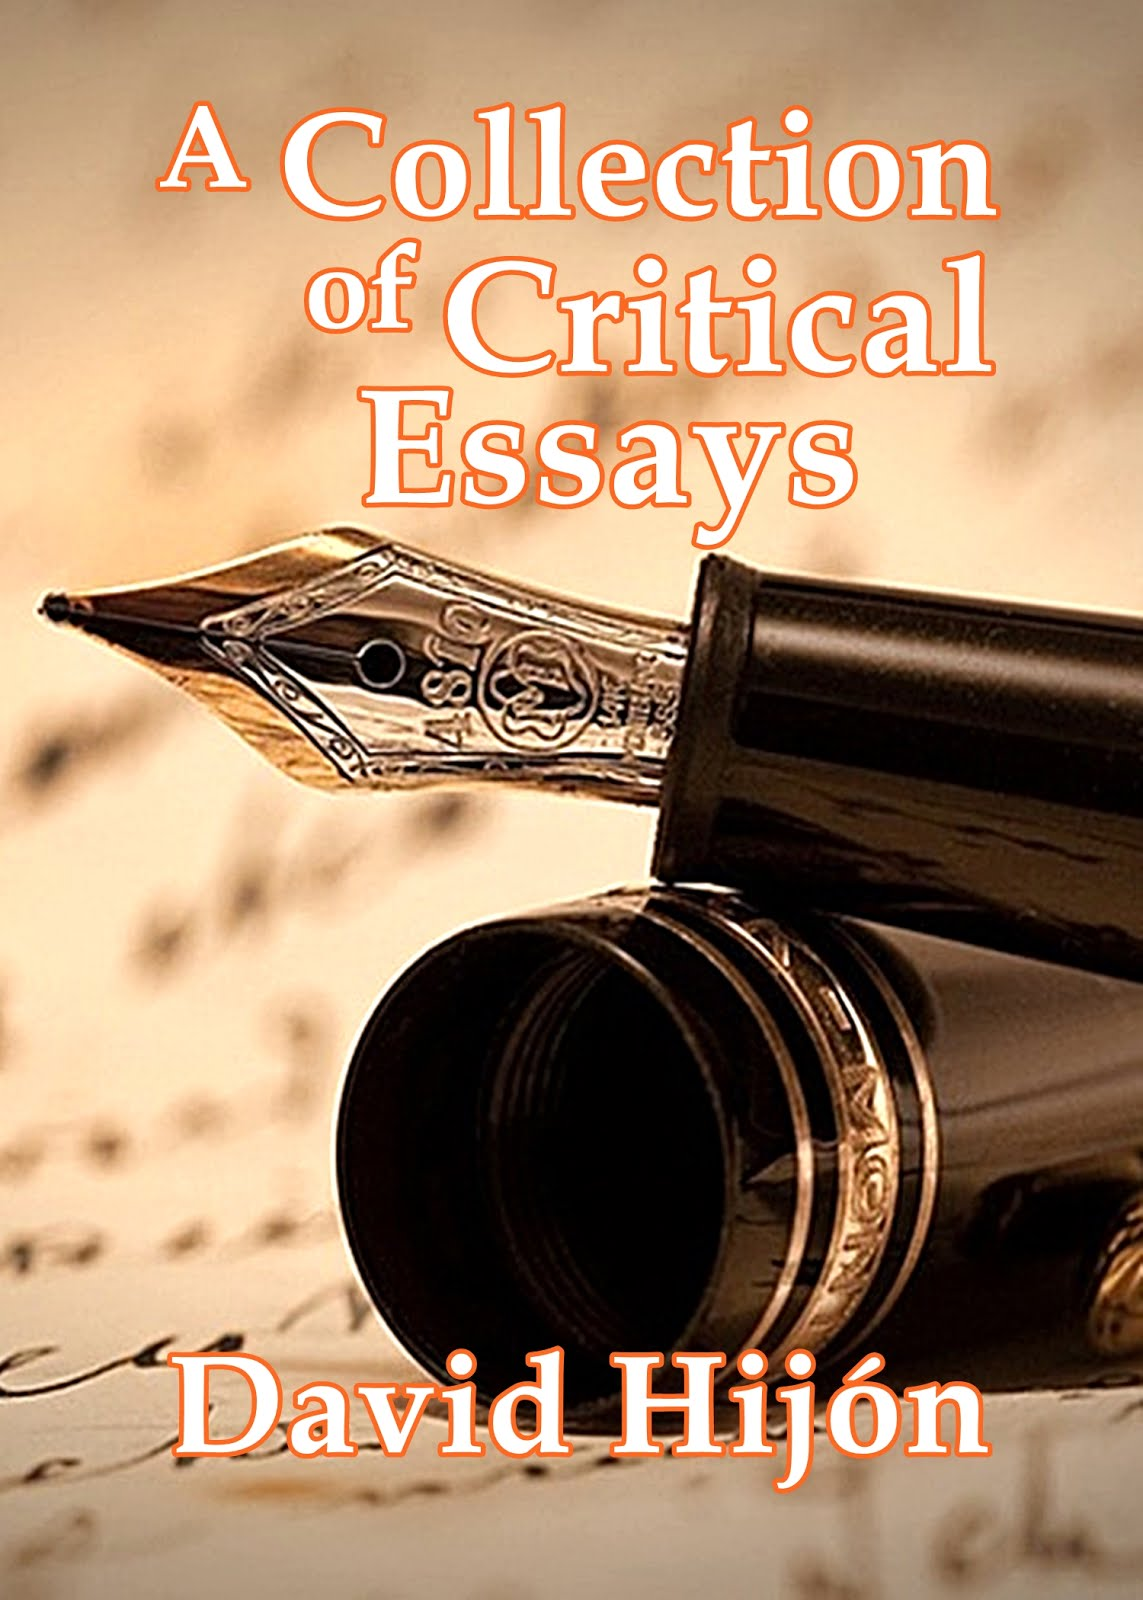 A Collection of Critical Essays